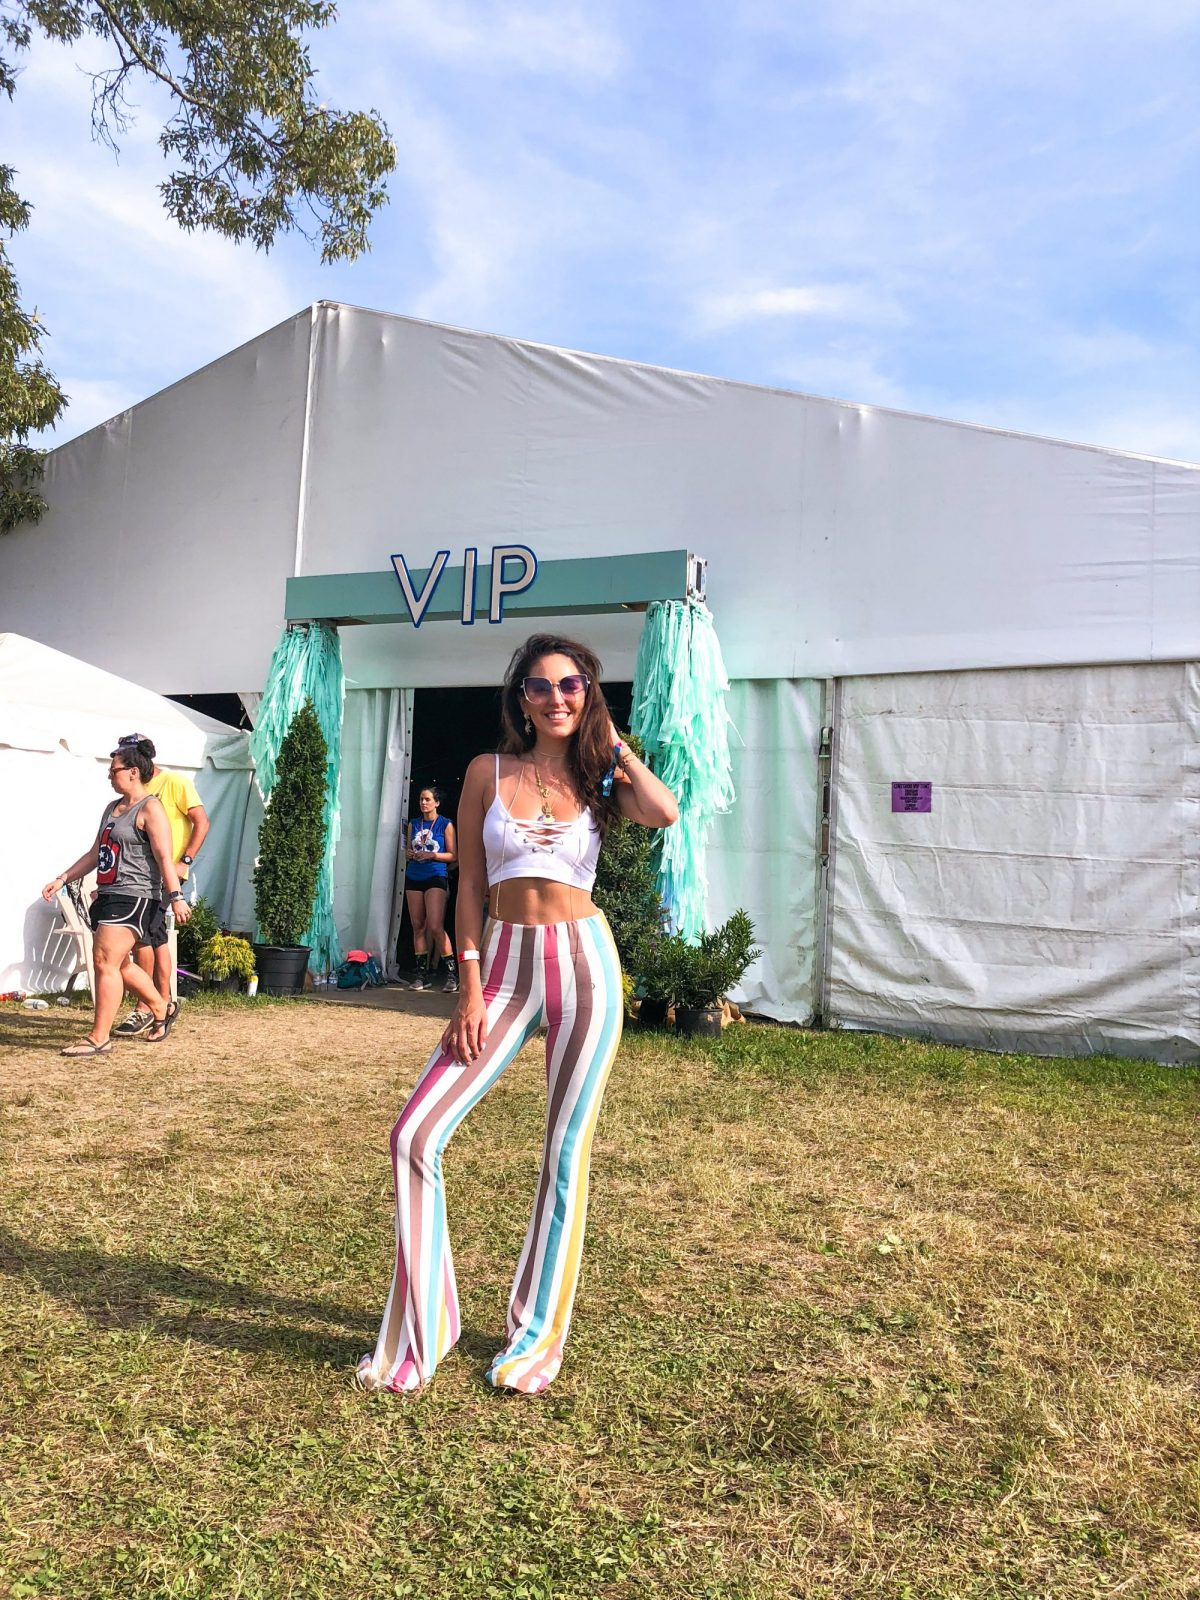 Bonnaroo 2018, mamie ruth striped pants, south moon under, festival style, alex and ani, the oasis at bacardi bay, vip at bonnaroo